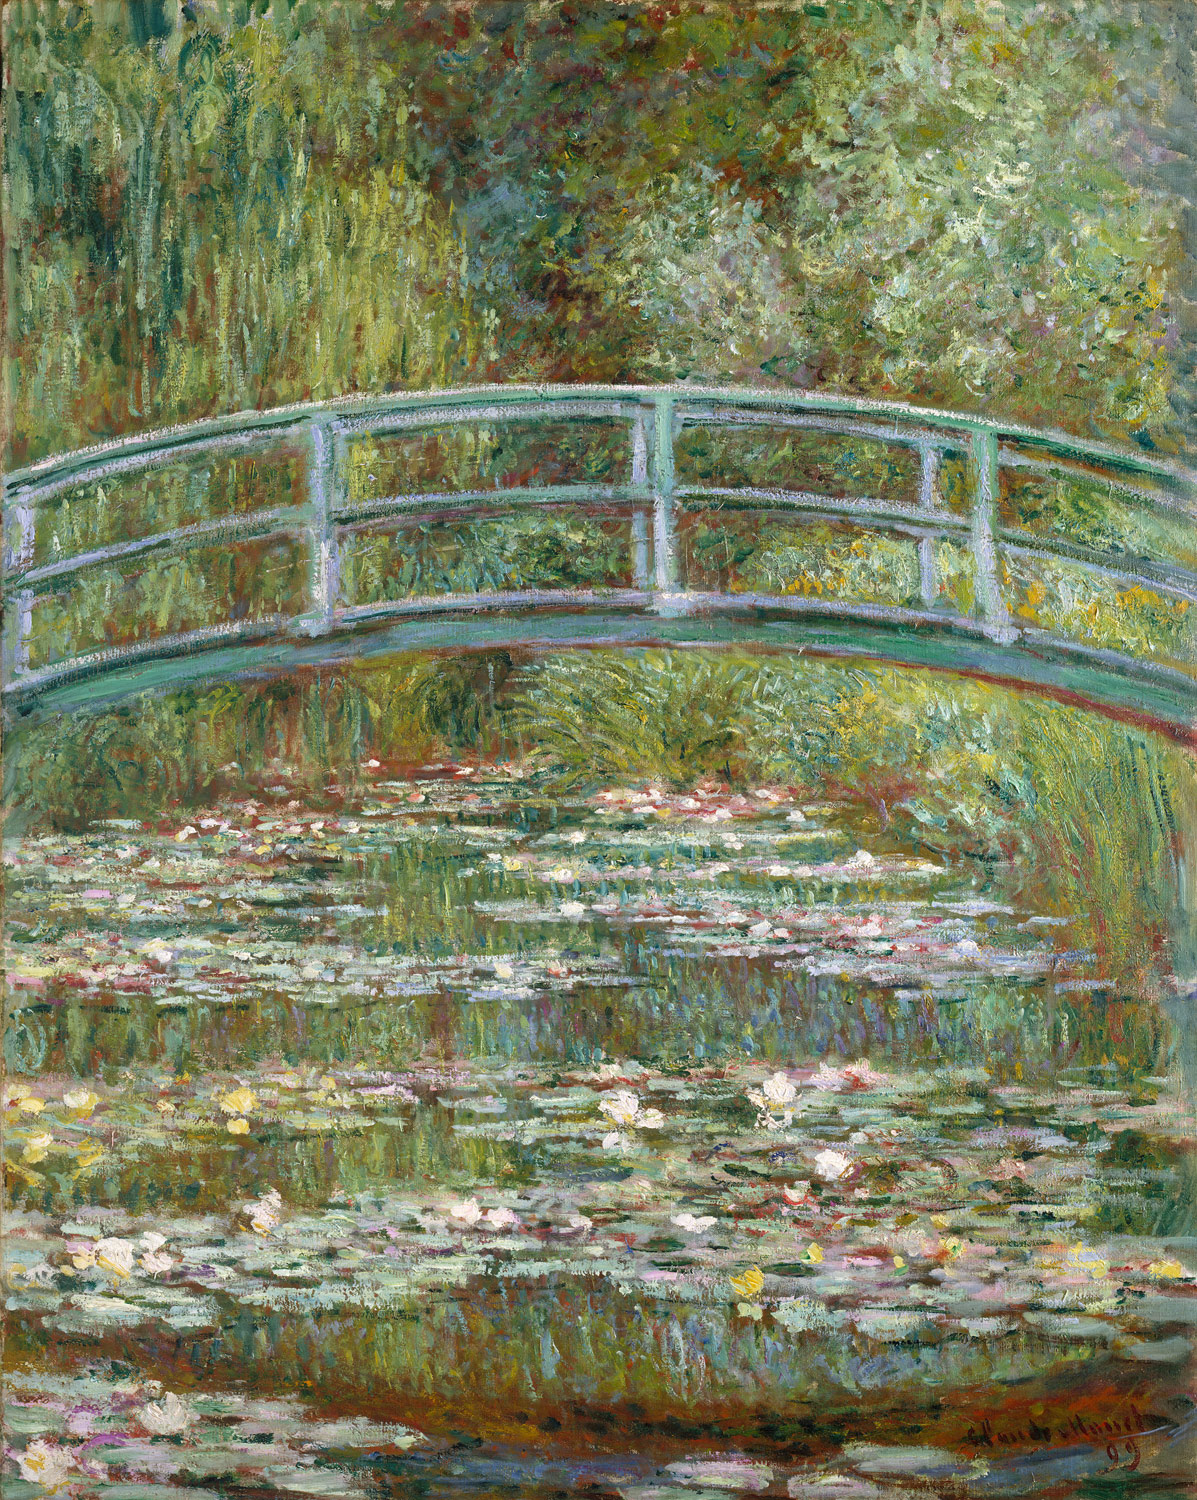 bridge-over-a-pond-of-water-lilies